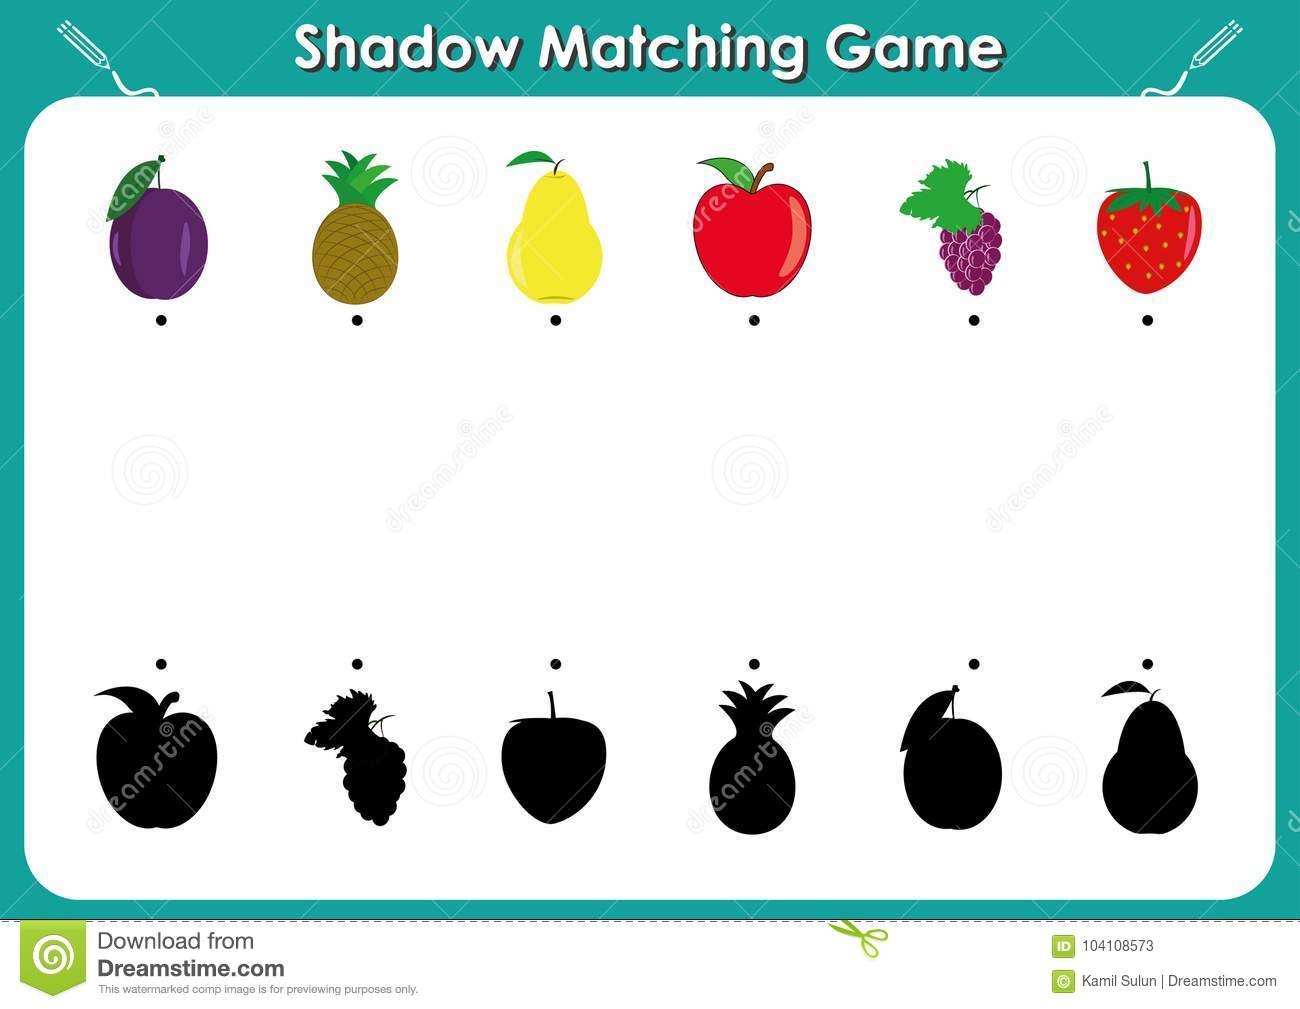 Preschool Worksheet About Shadows